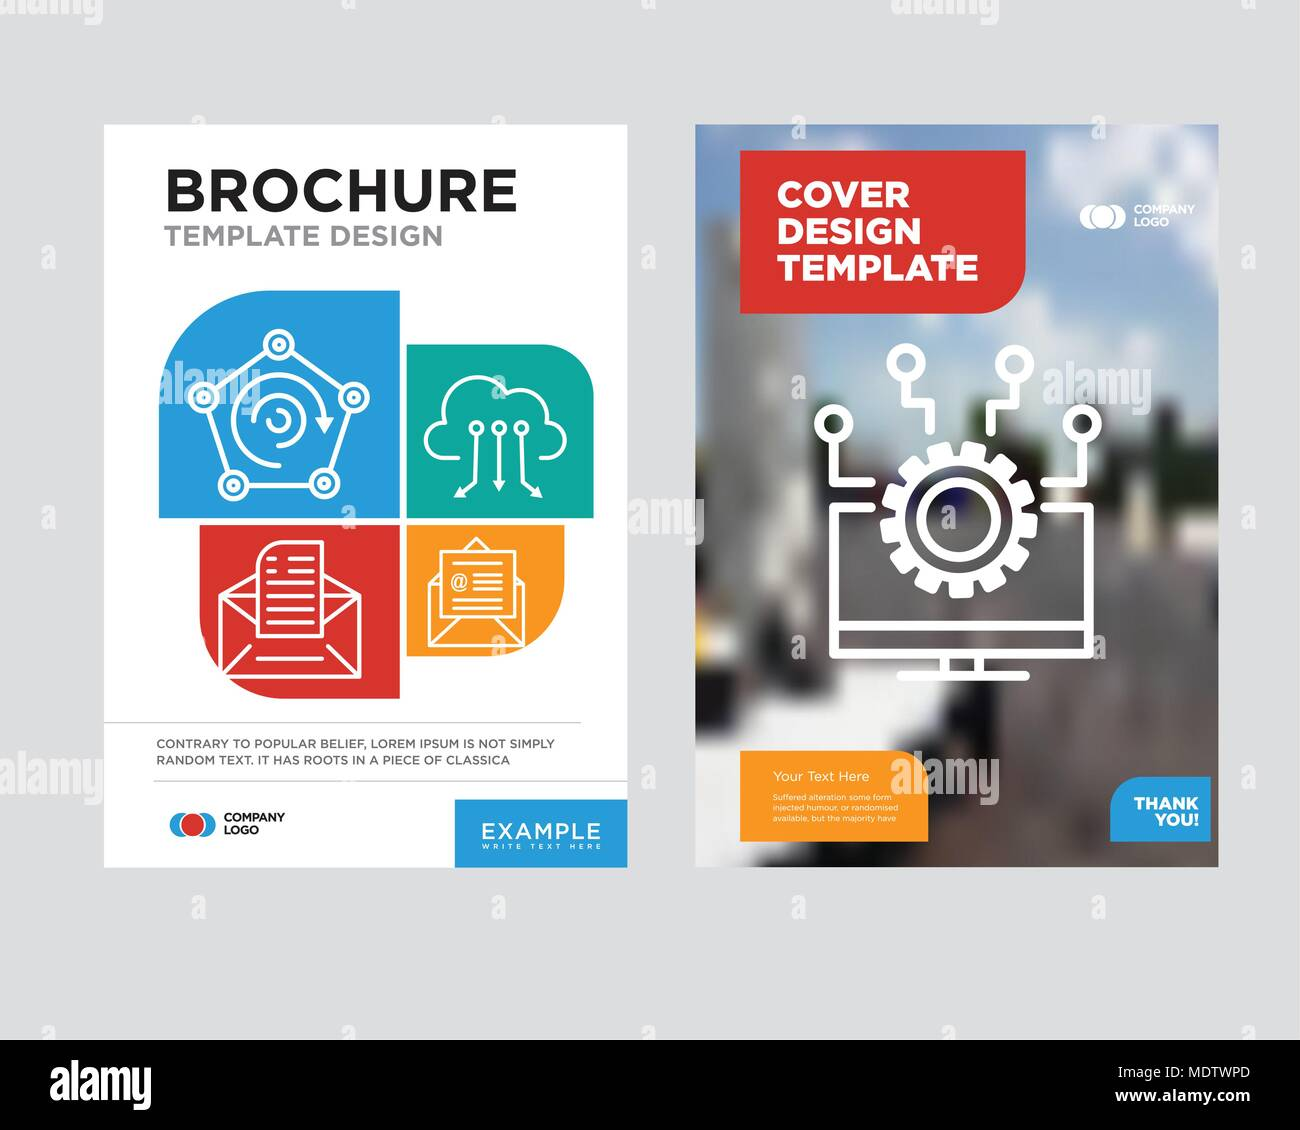 laptop brochure flyer design template with abstract photo background